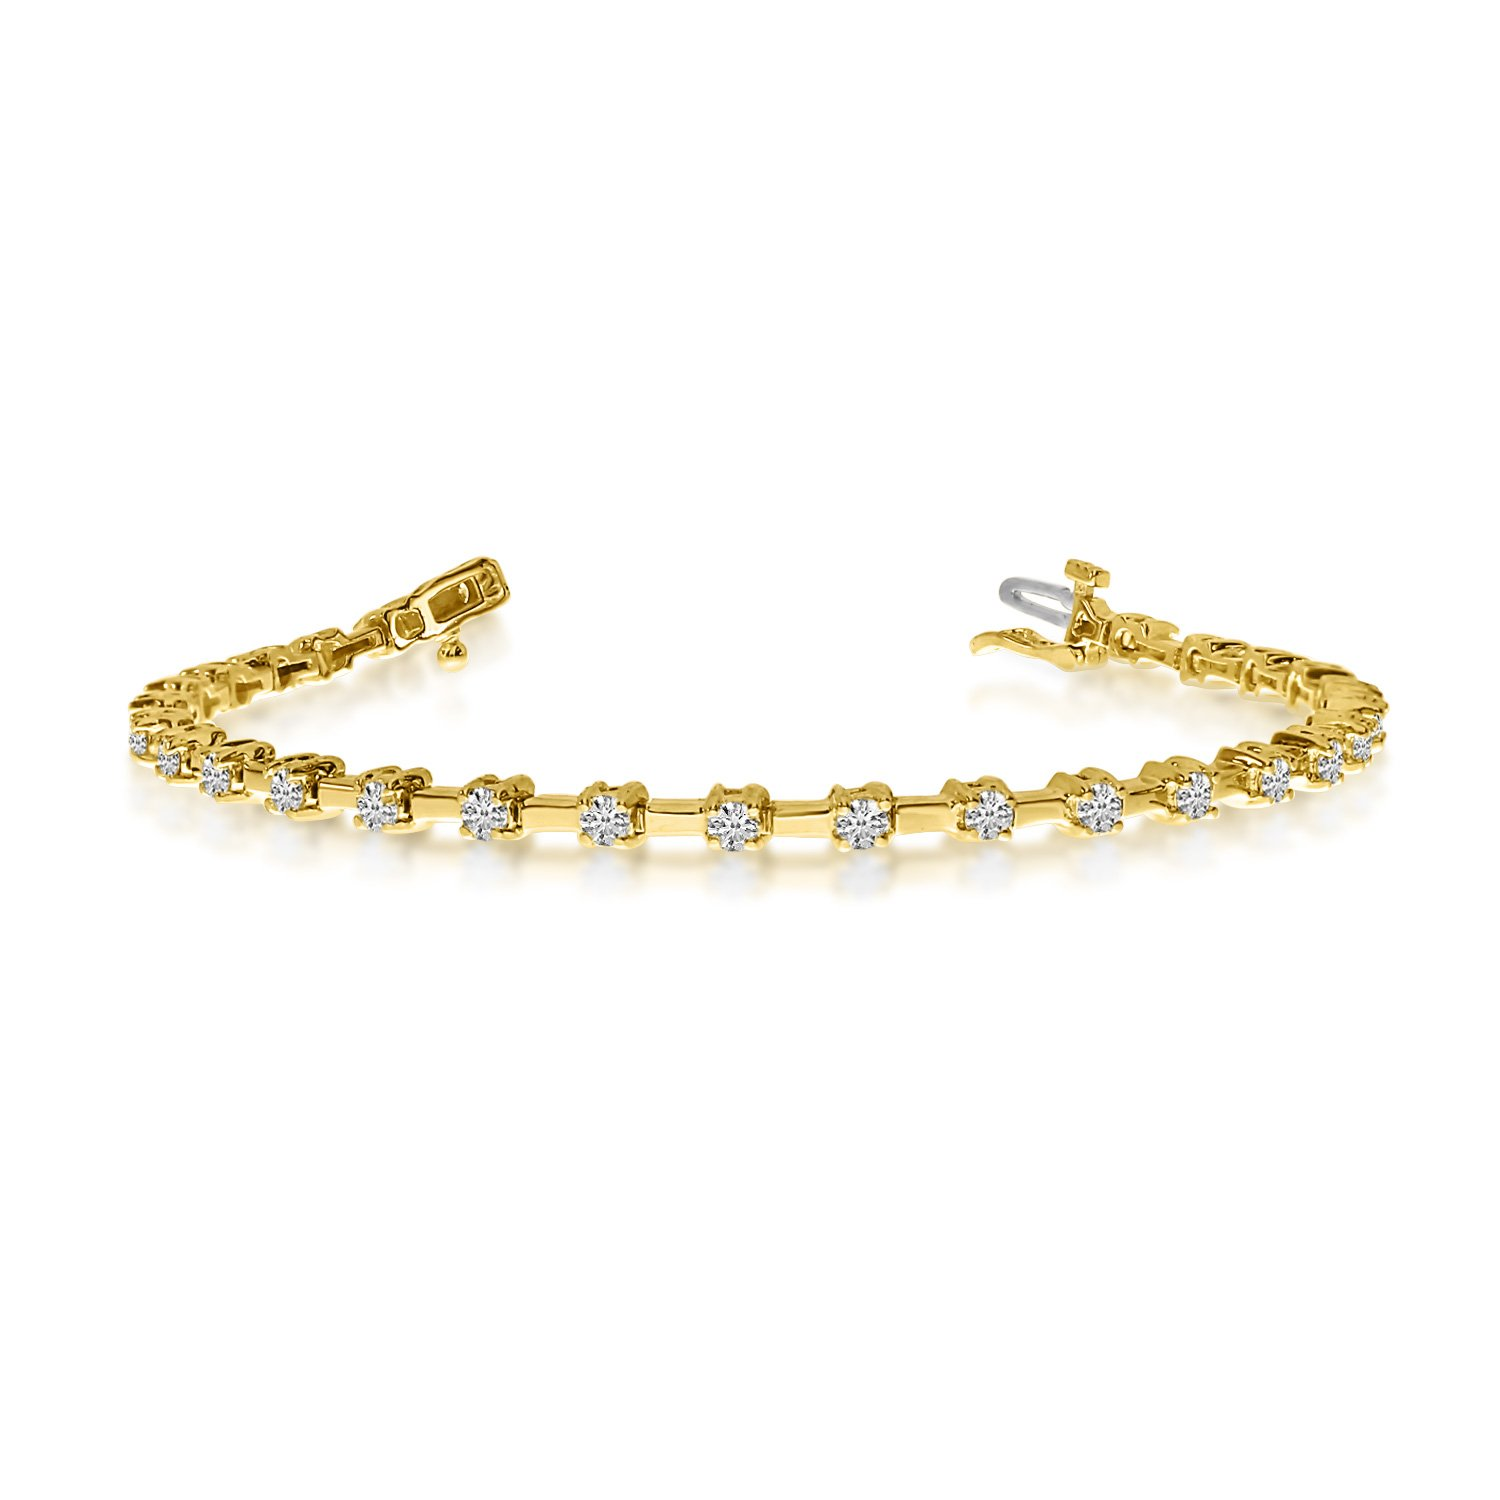 14K Yellow Gold Round Diamond Bar Style Tennis Bracelet (8 Inch Length) by Direct-Jewelry